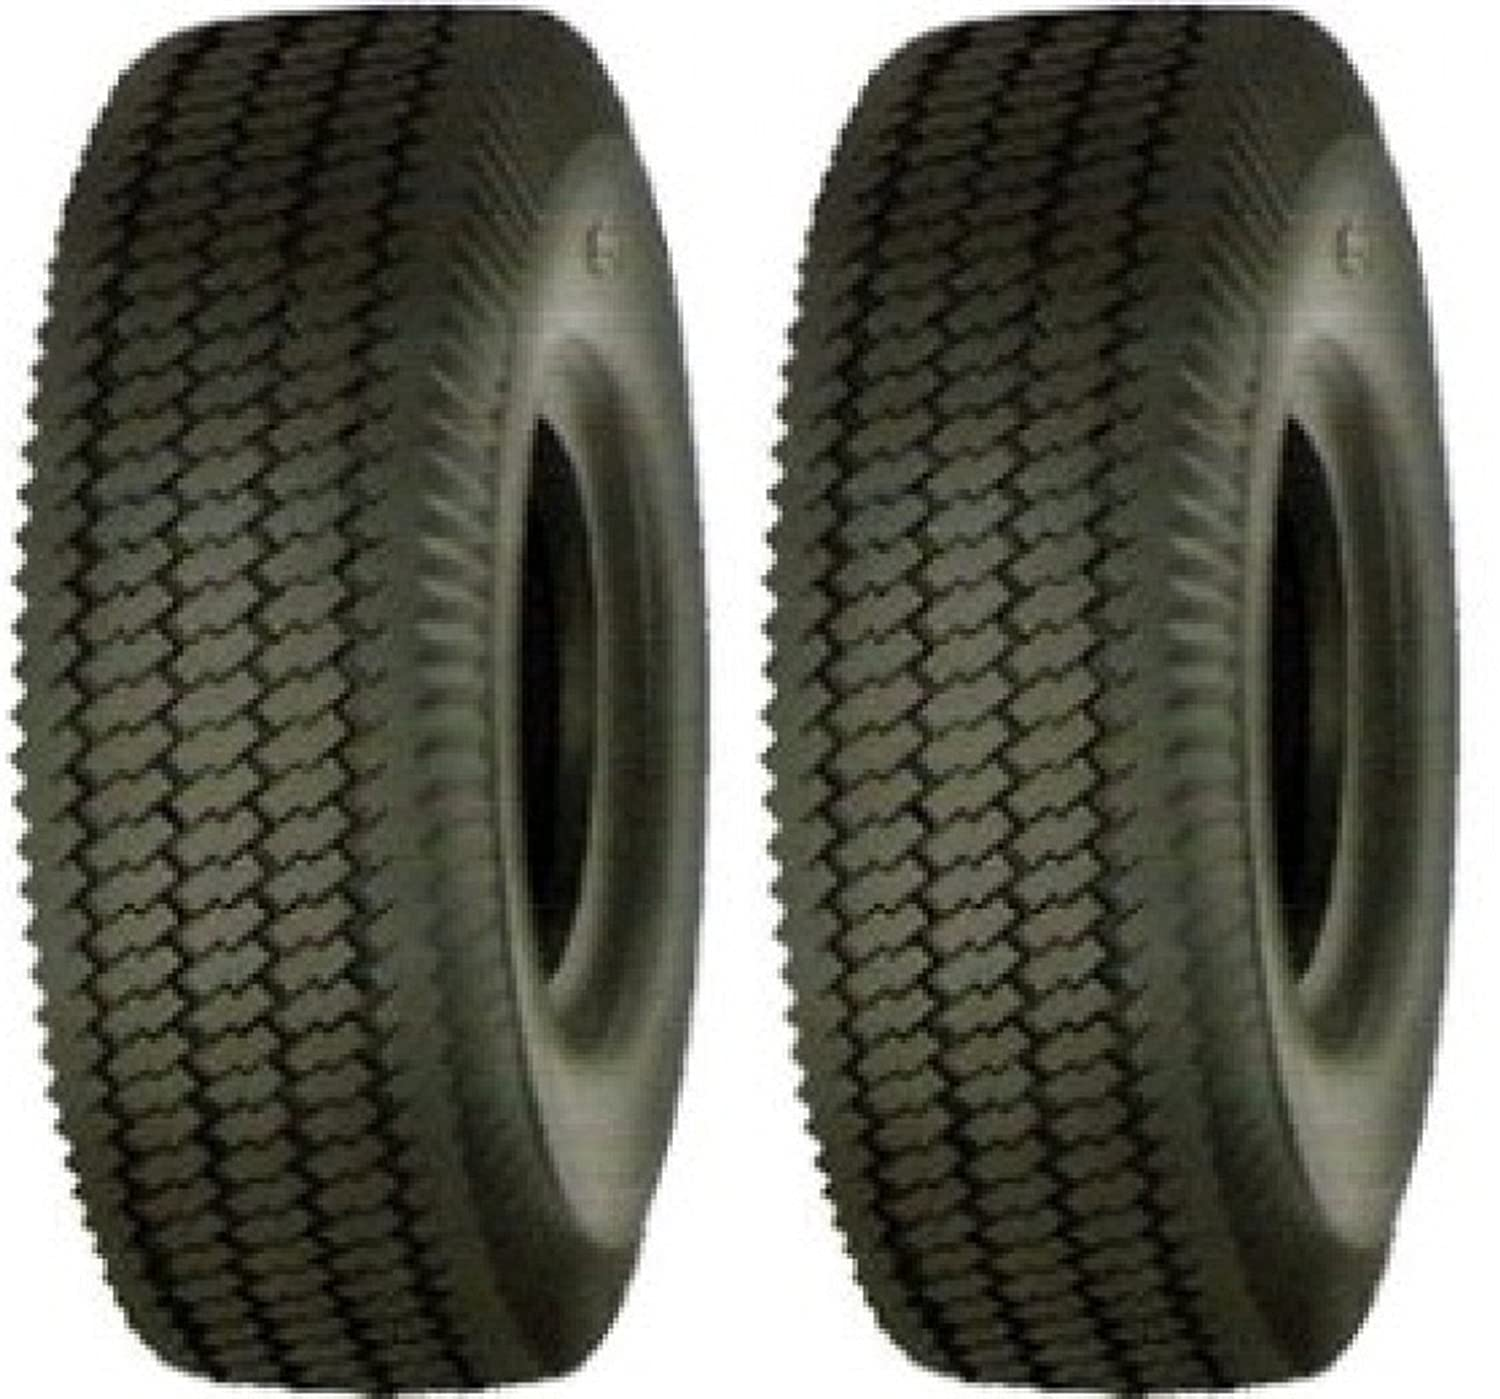 SET OF (2) 4.10/3.50-5 Tubeless 4Ply Rated Sawtooth Rib Tires Major